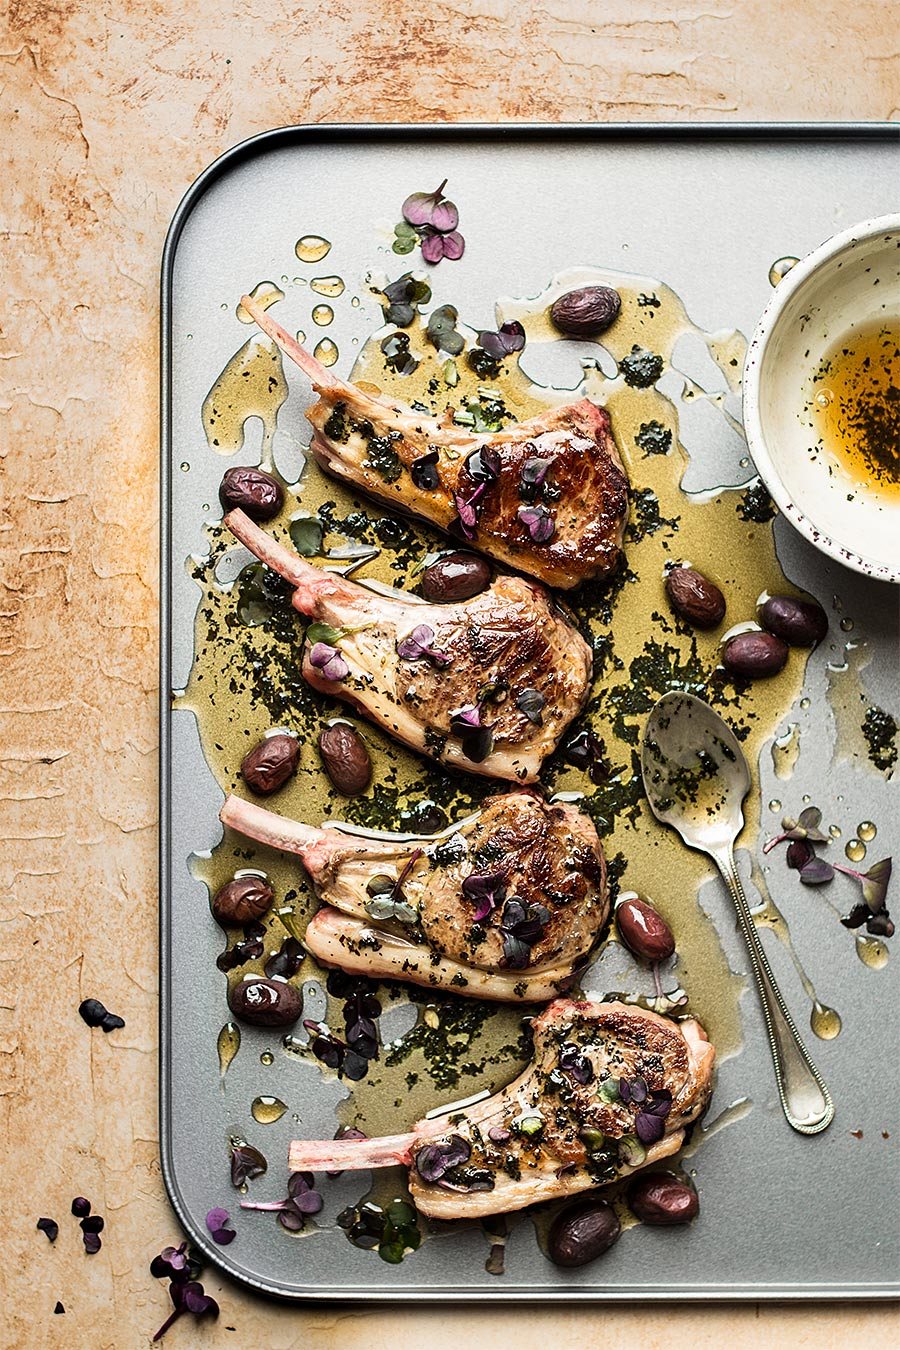 Lamb cuttles with mint sauce by Laura Domingo